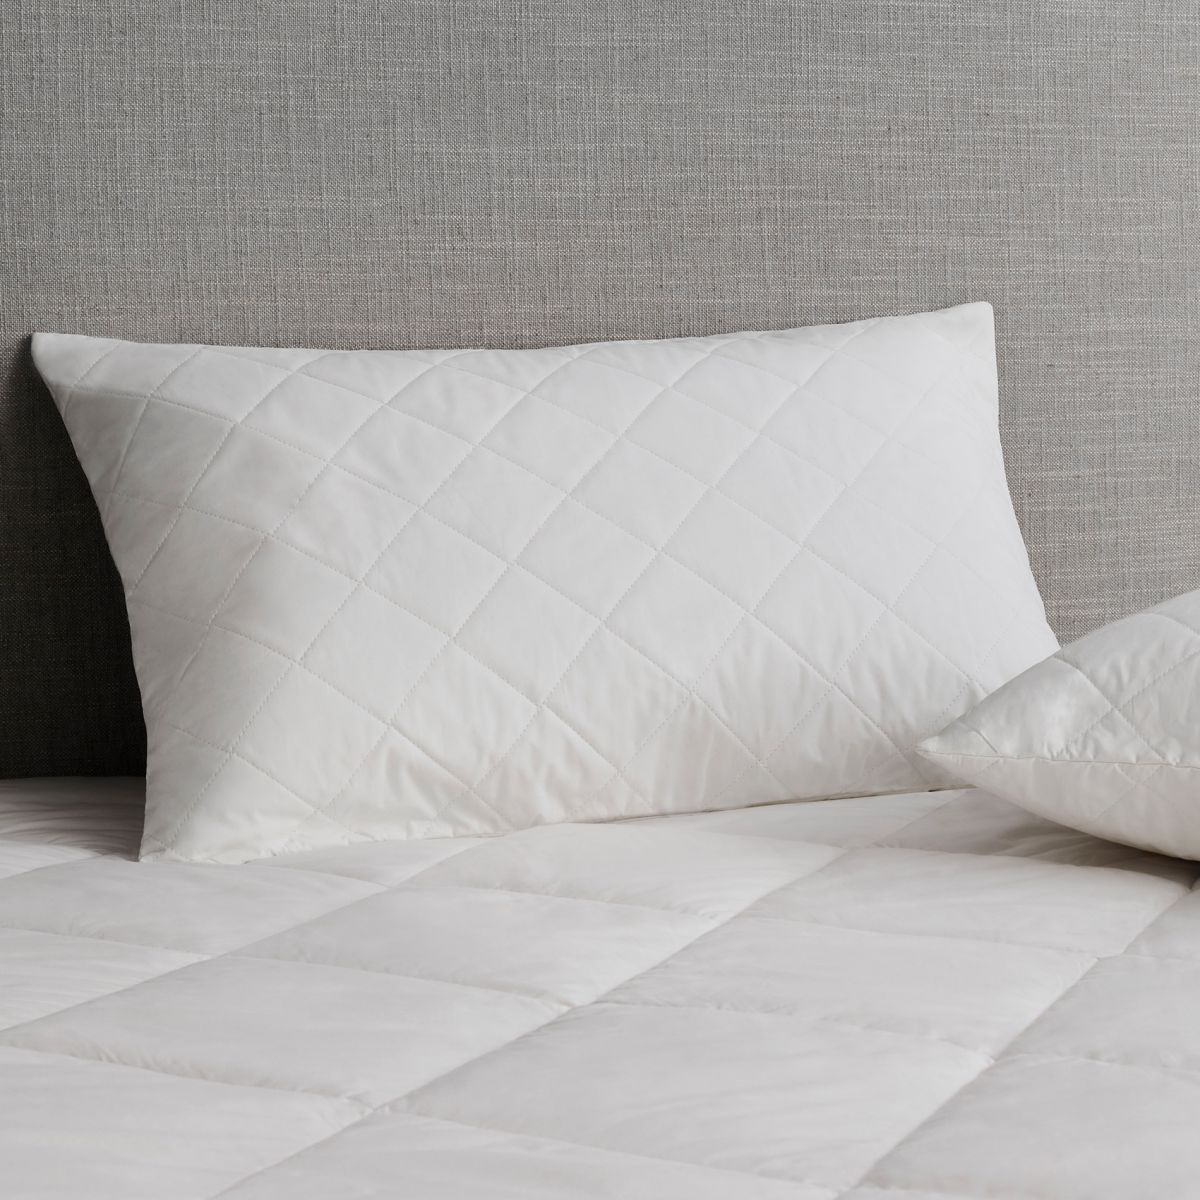 ultracool cotton quilted pillow protector